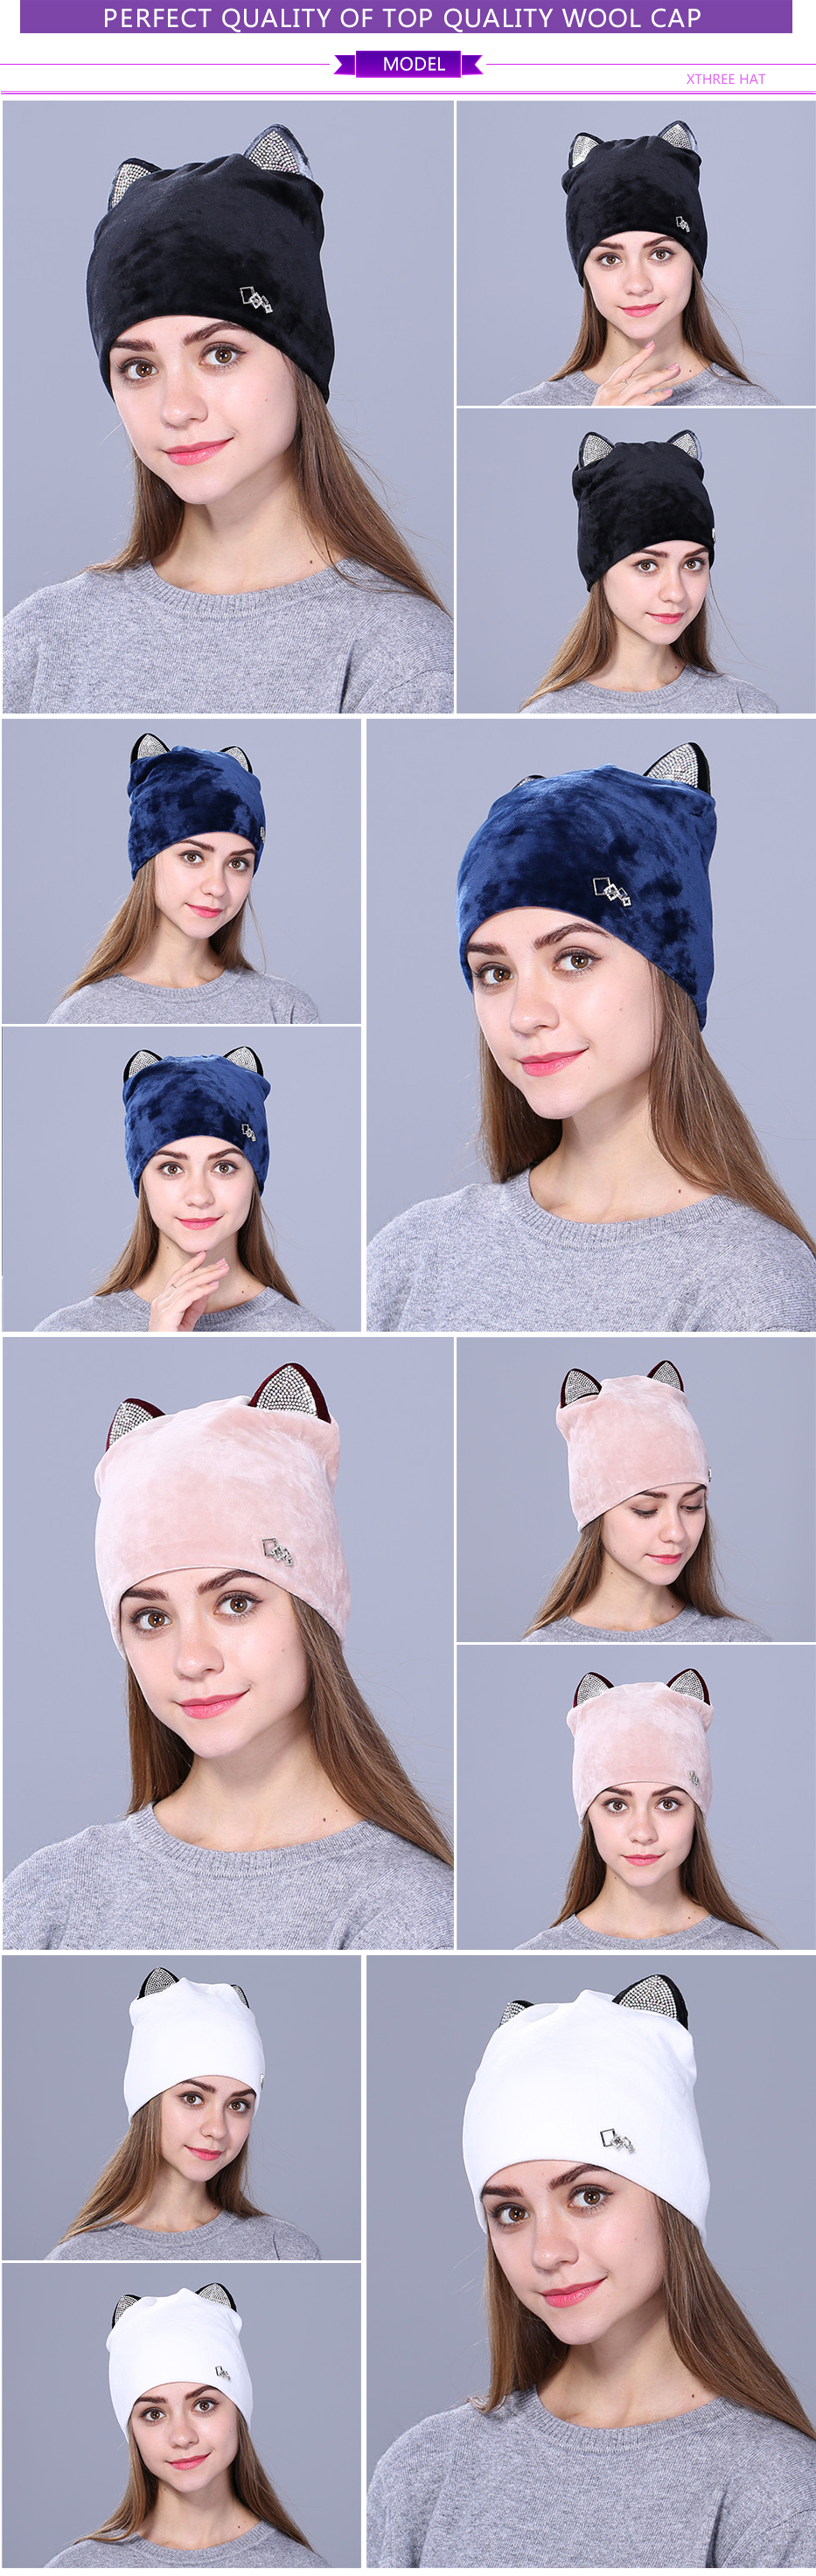 Xthree Flannelette women autumn winter hat cute kitty children beanies hat for girls Skullies gorras 12